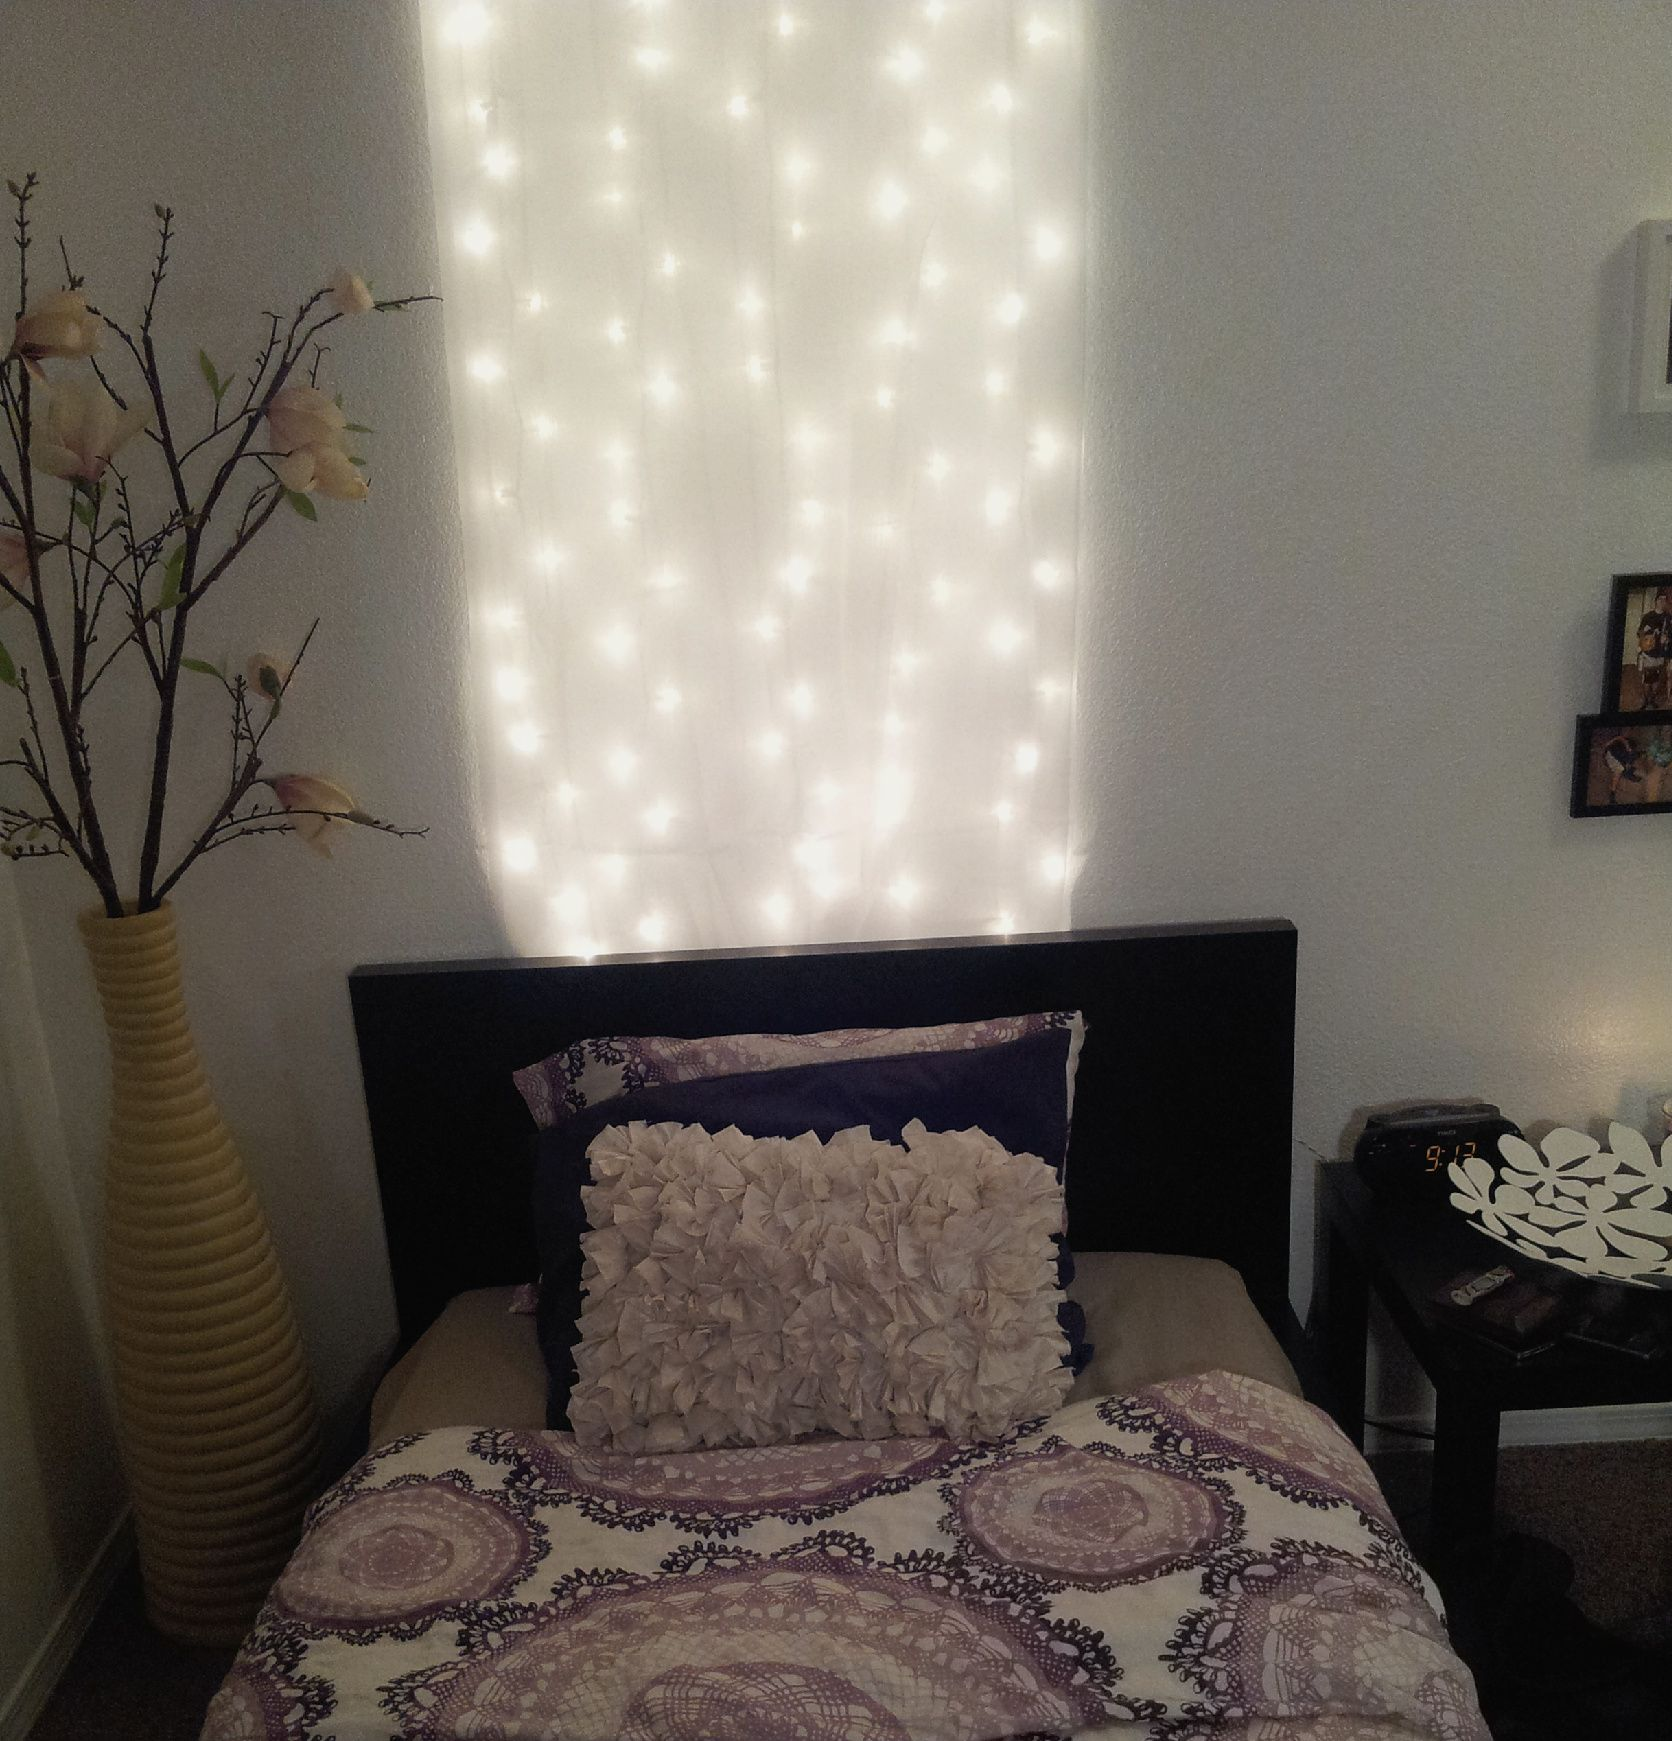 Diy Headboards With Lights diy headboard under $10! 1 pack of white christmas lights and